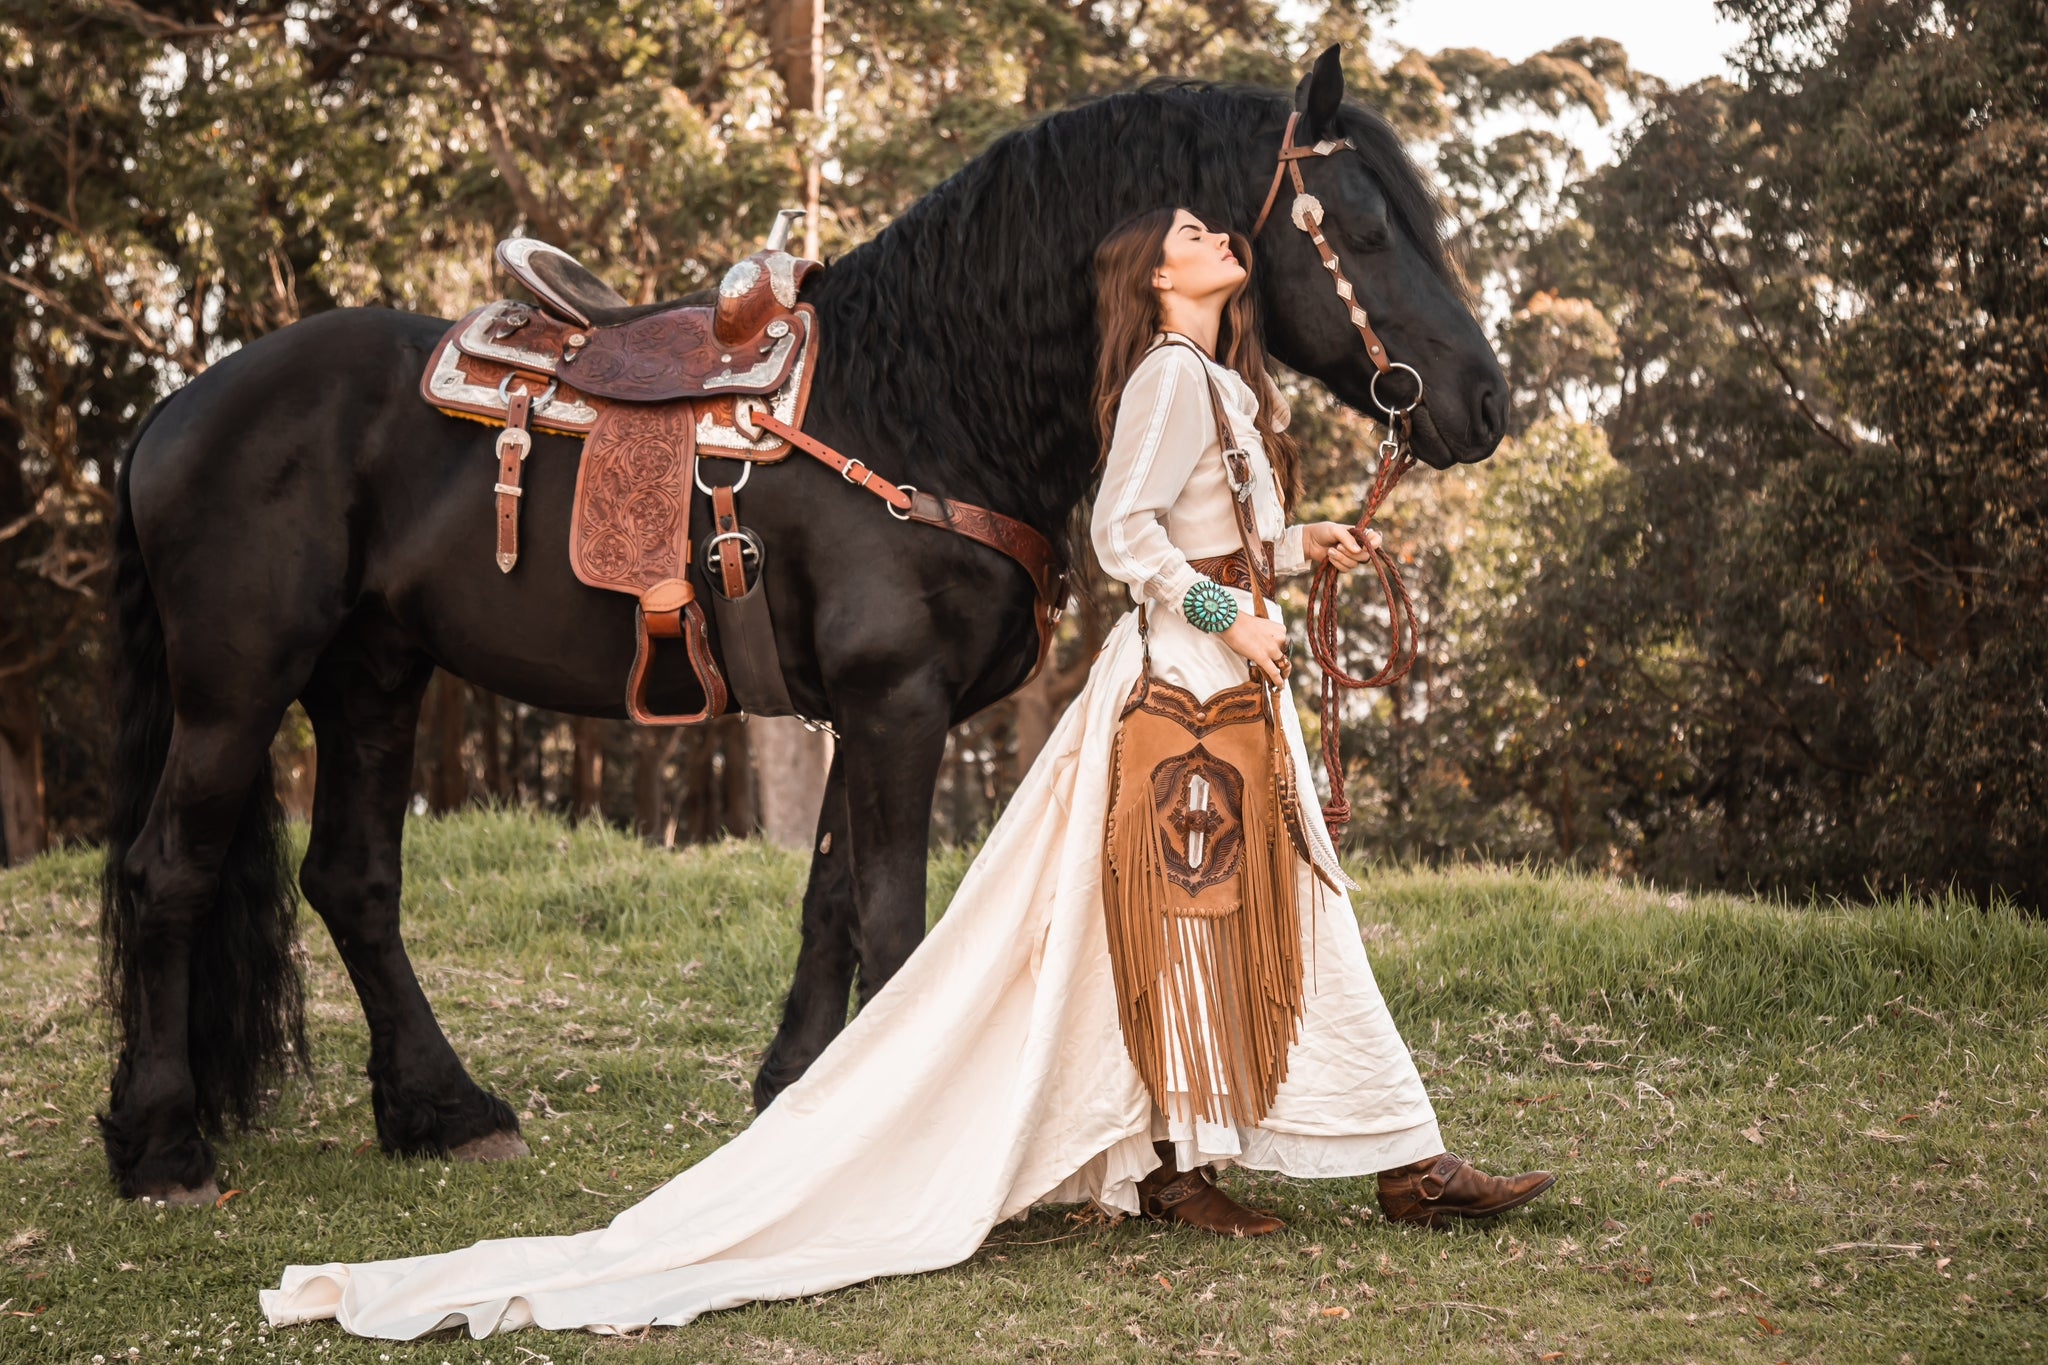 Black friesian horse with girl in a long white gown